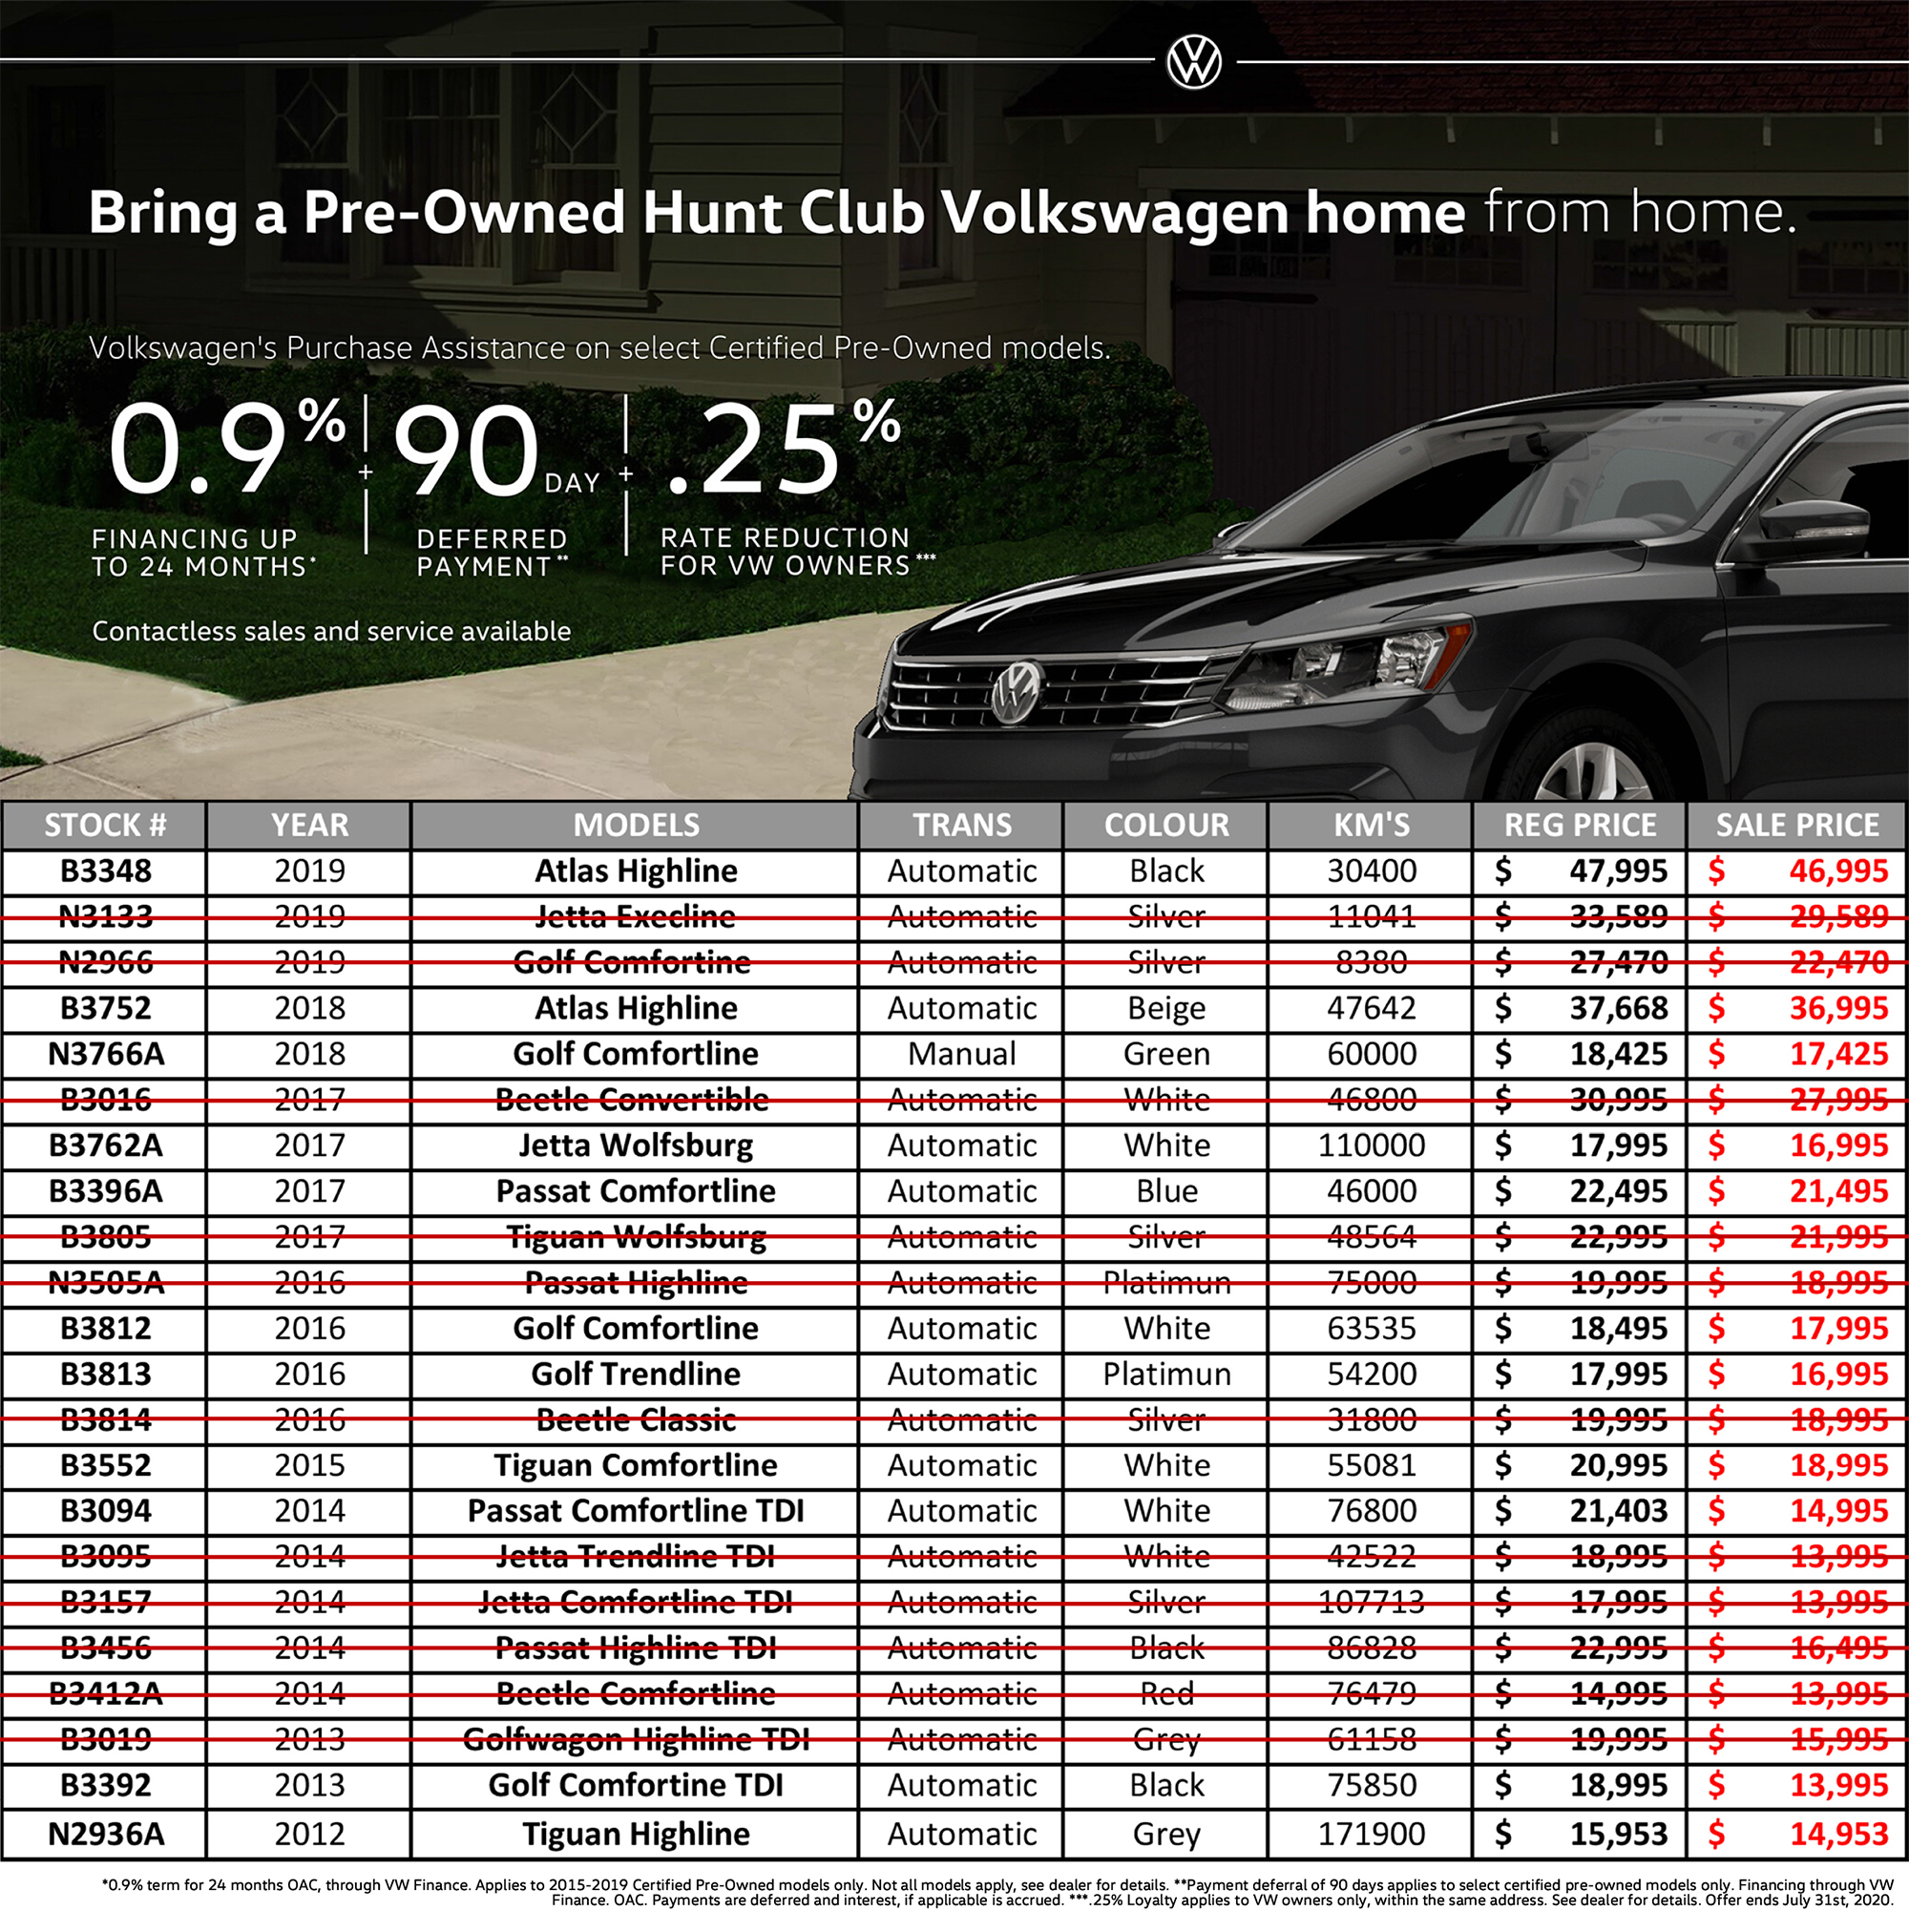 Volkswagen pre-owned sale hunt club vw ottawa